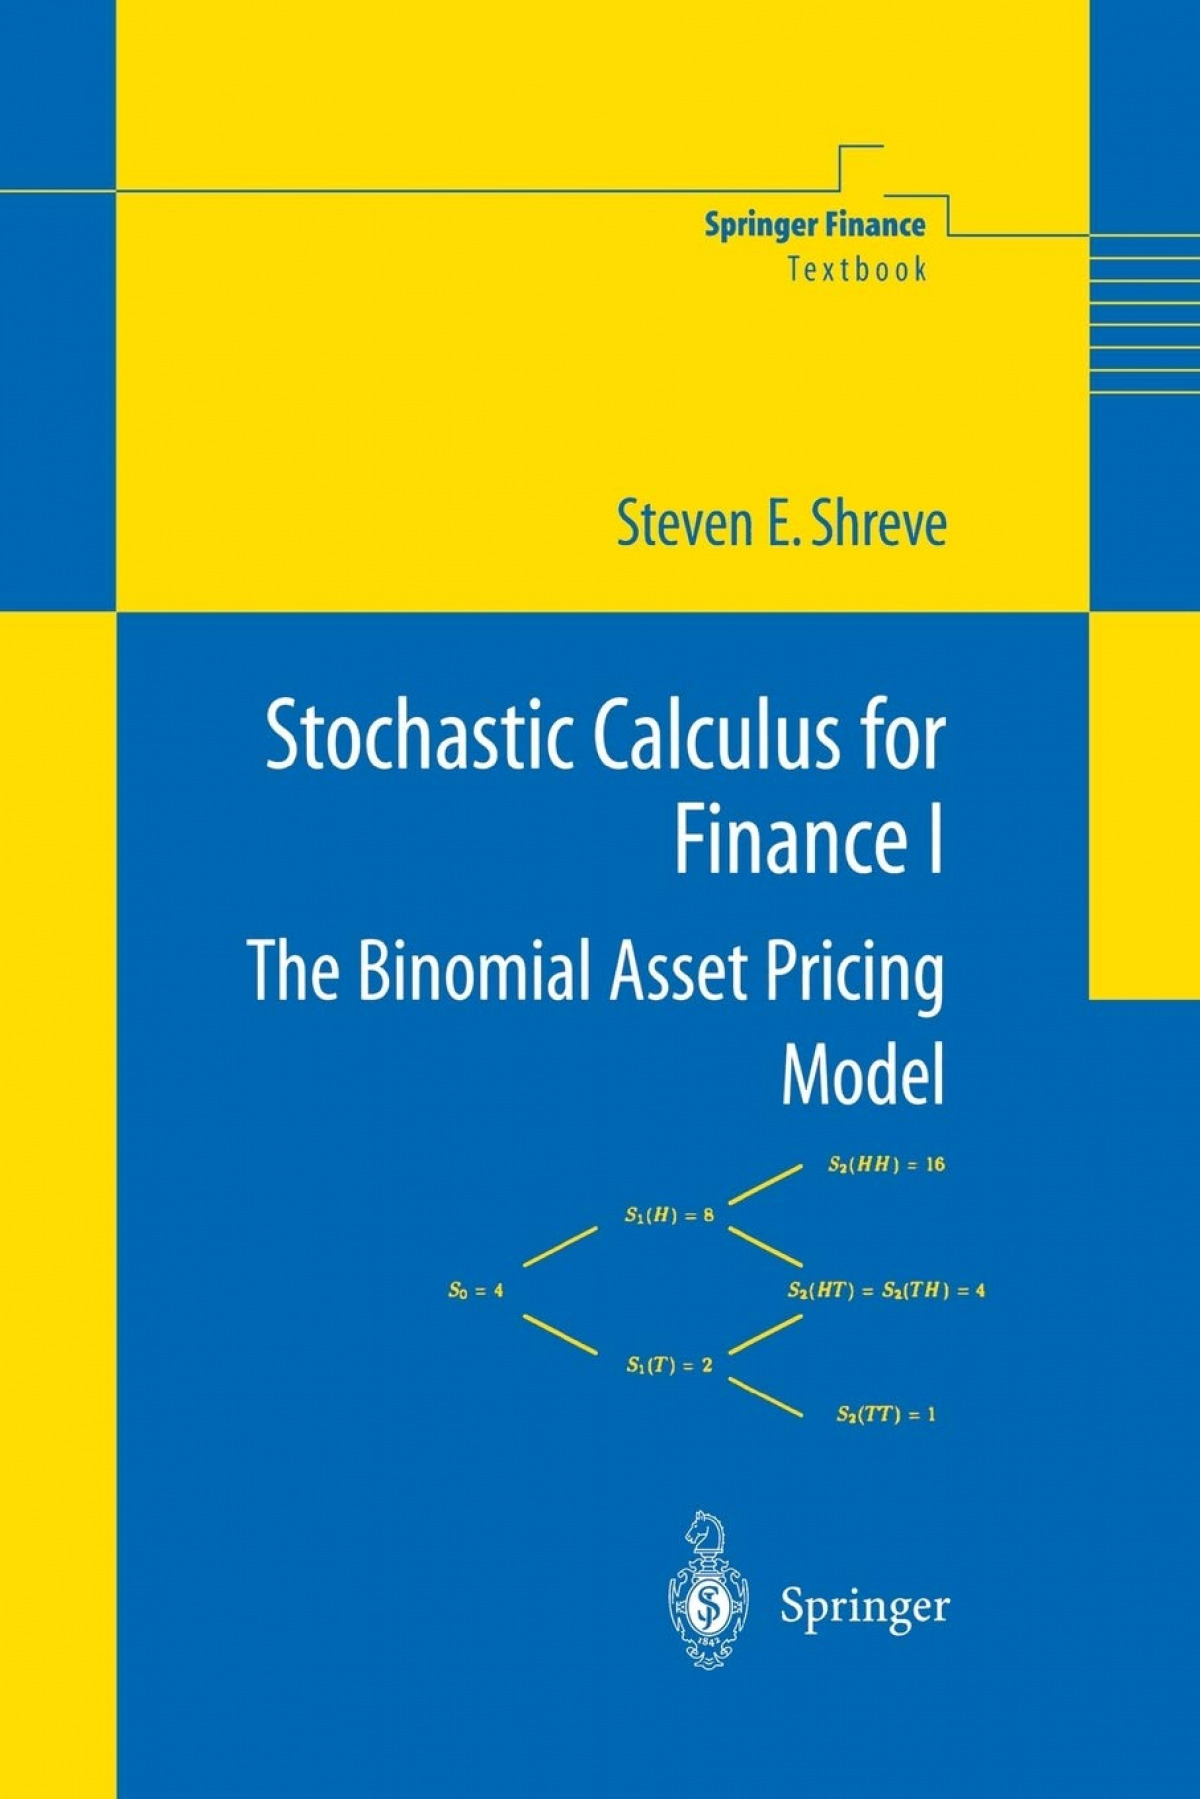 Scholastic calculus for finance